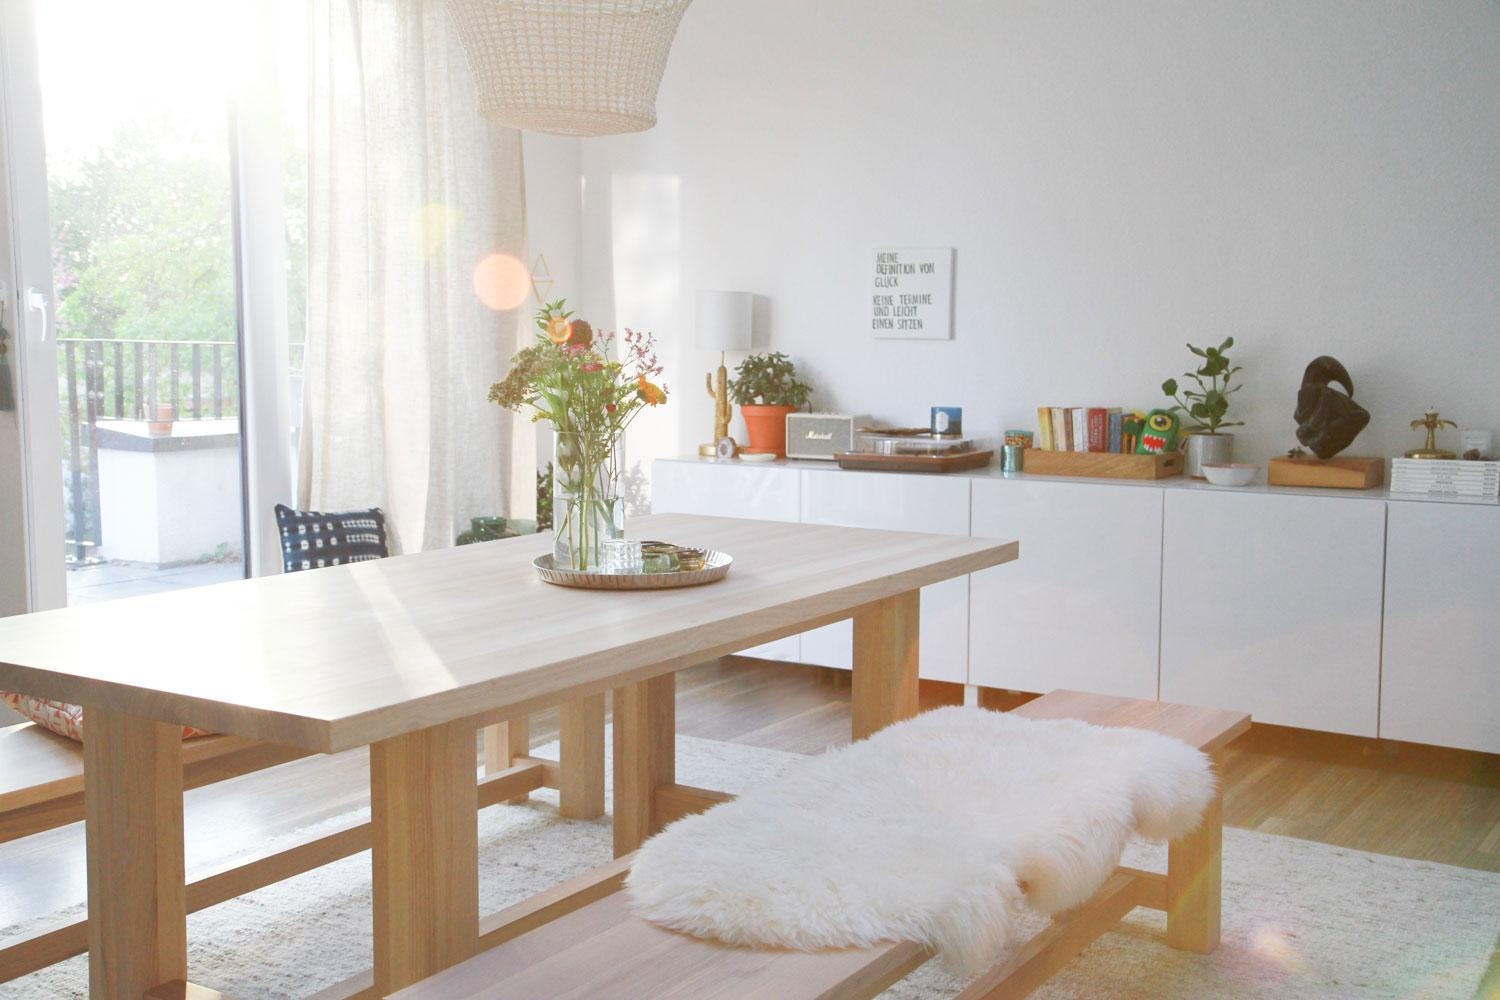 Mein absolutes Lieblingszimmer #diningroomlove #bohemianliving